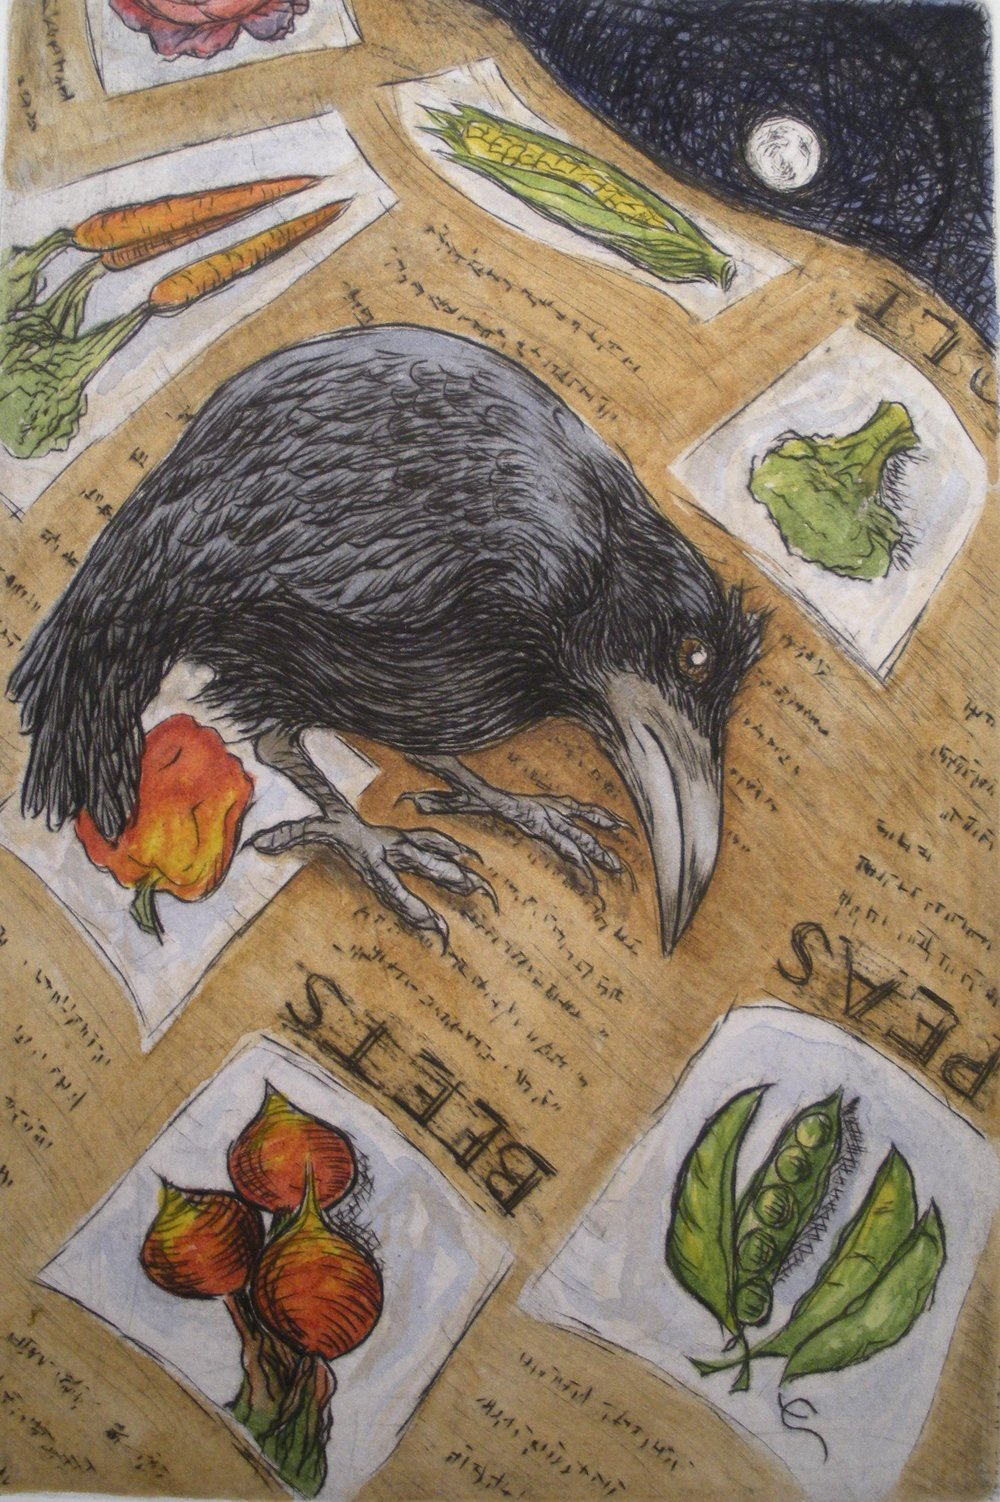 "Seed Catalog Moon - Raven siblings often stay together their first few years. Ravens nest in the woods near our house, so we often have fledglings hanging around in our yard. I like to think that they feel safe here. One day I noticed a raven playing with a Poppy. The bright orange blossoms were waving in the breeze and the little raven was quite fascinated. He would wait for the flower to sway towards him and then reach over to peck at it with his beak, sending it nodding to the ground and bobbing back up. Peck, nod, bob, peck, he amused himself (and me) with this trick for quite a while.  His sister flew by and landed on the flat arm of an Adirondack chair in my garden and proceeded to squawk. Her brother swooped in and tried to land on the back of the chair. It proved too slim of a perch and he was a fluster of flapping wings as he tried to gain balance. He lost footing on the slippery backrest, slid down the backrest of the chair, landed ingloriously on the seat, and looked over at his sister. ""Huh,"" he seemed to say, ""that was kinda fun.""  He flew back up and o'er and proceeded, with signature flap and frolic, to slide down again.  And again.  And again and again. Up, down, up, down, his sibling turning her head in time to his antics, watching his goofy game. Pure, unabashed silliness. If she's like any good sister, she was probably thinking; ""Dork."""